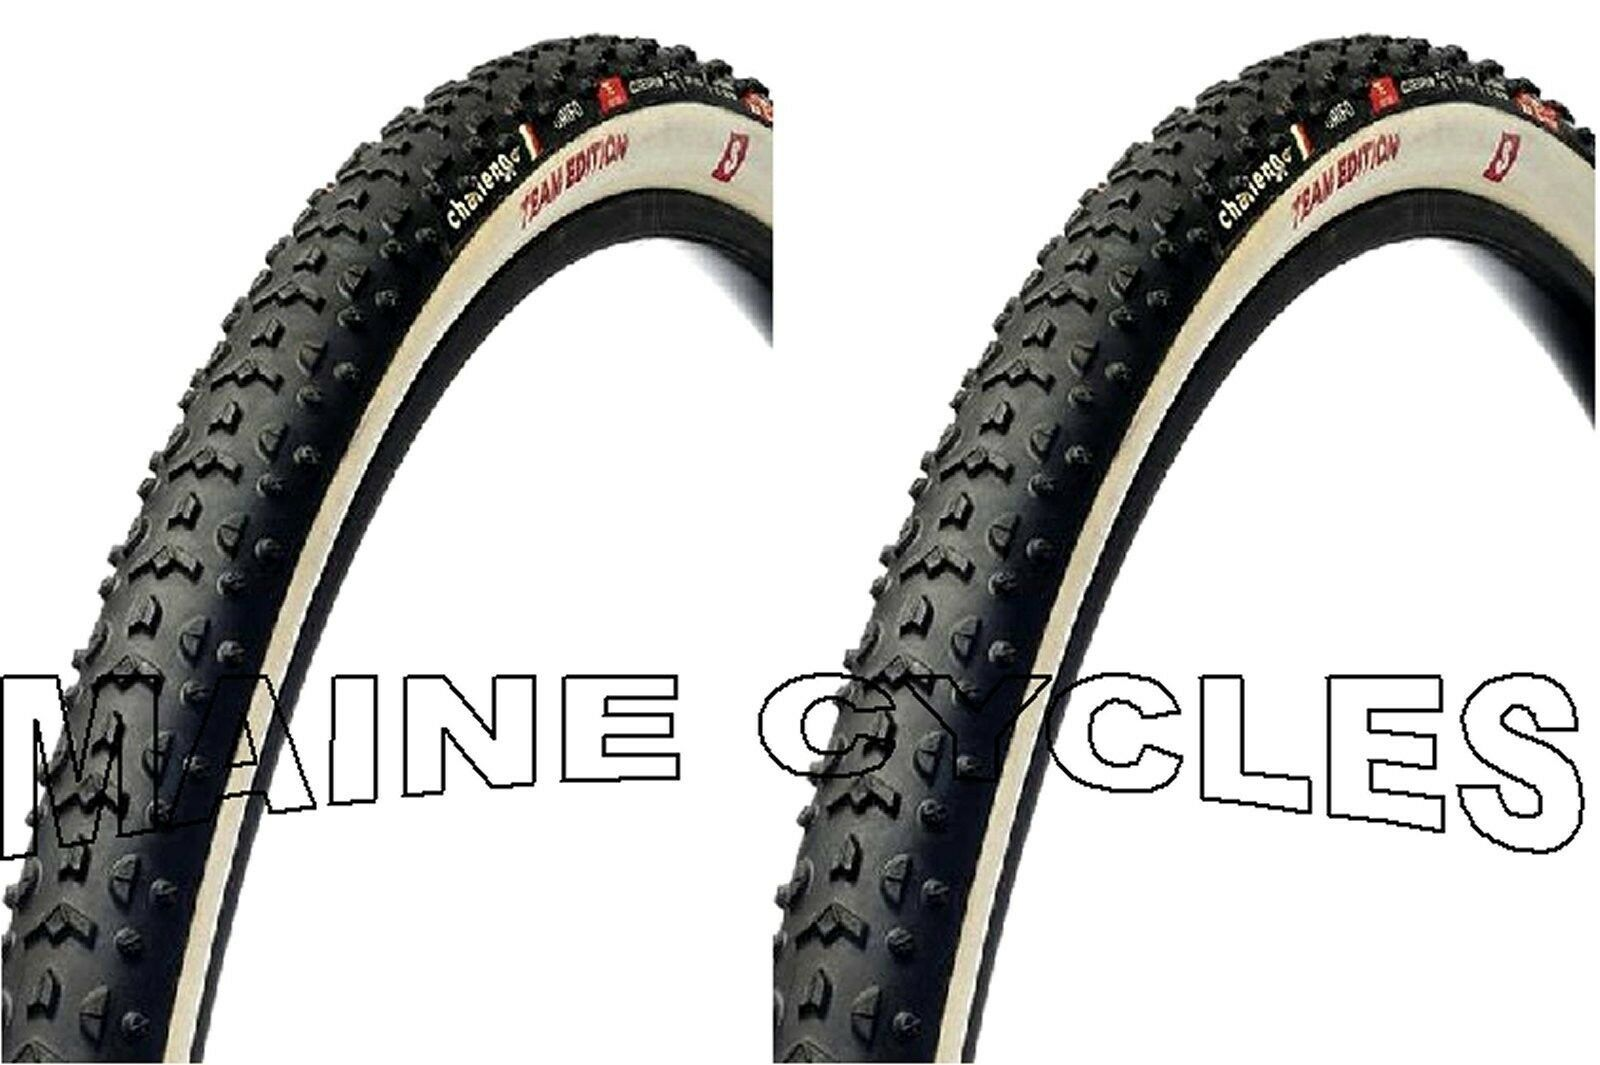 Challenge Grifo S Team Edition cyclocross tubular 700  x 30 (2 tires)  online outlet sale